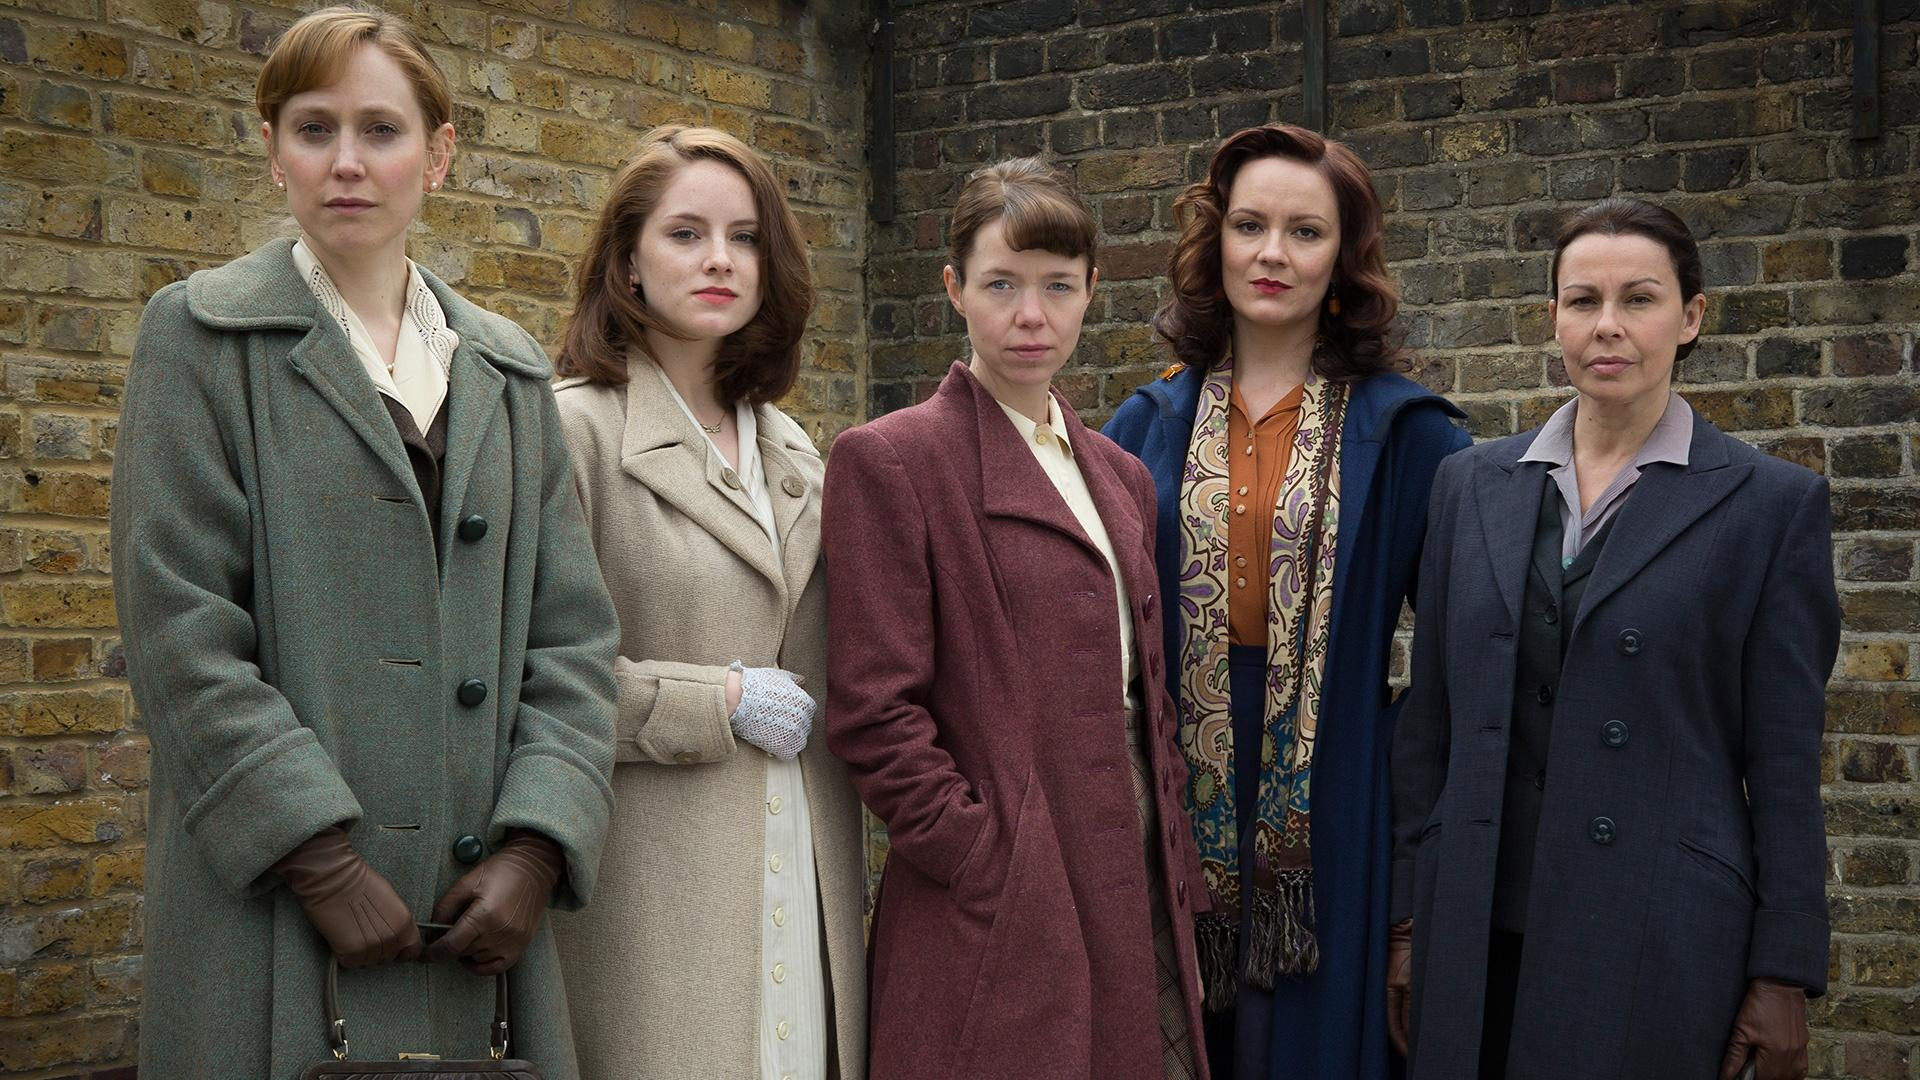 Watch Full Episodes Online Of The Bletchley Circle On Pbs